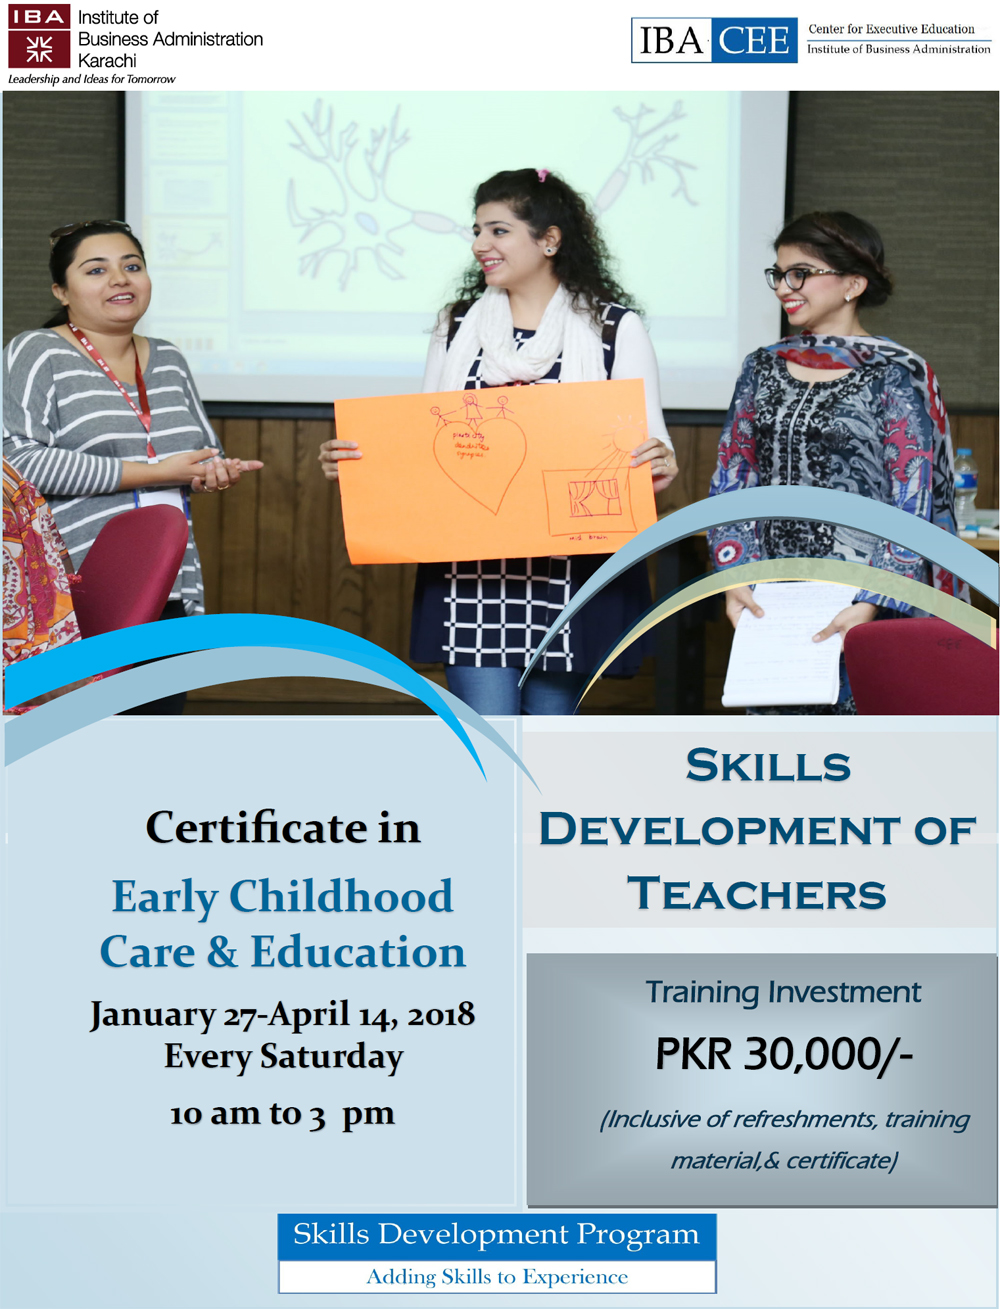 Certificate in Early Childhood Care & Education